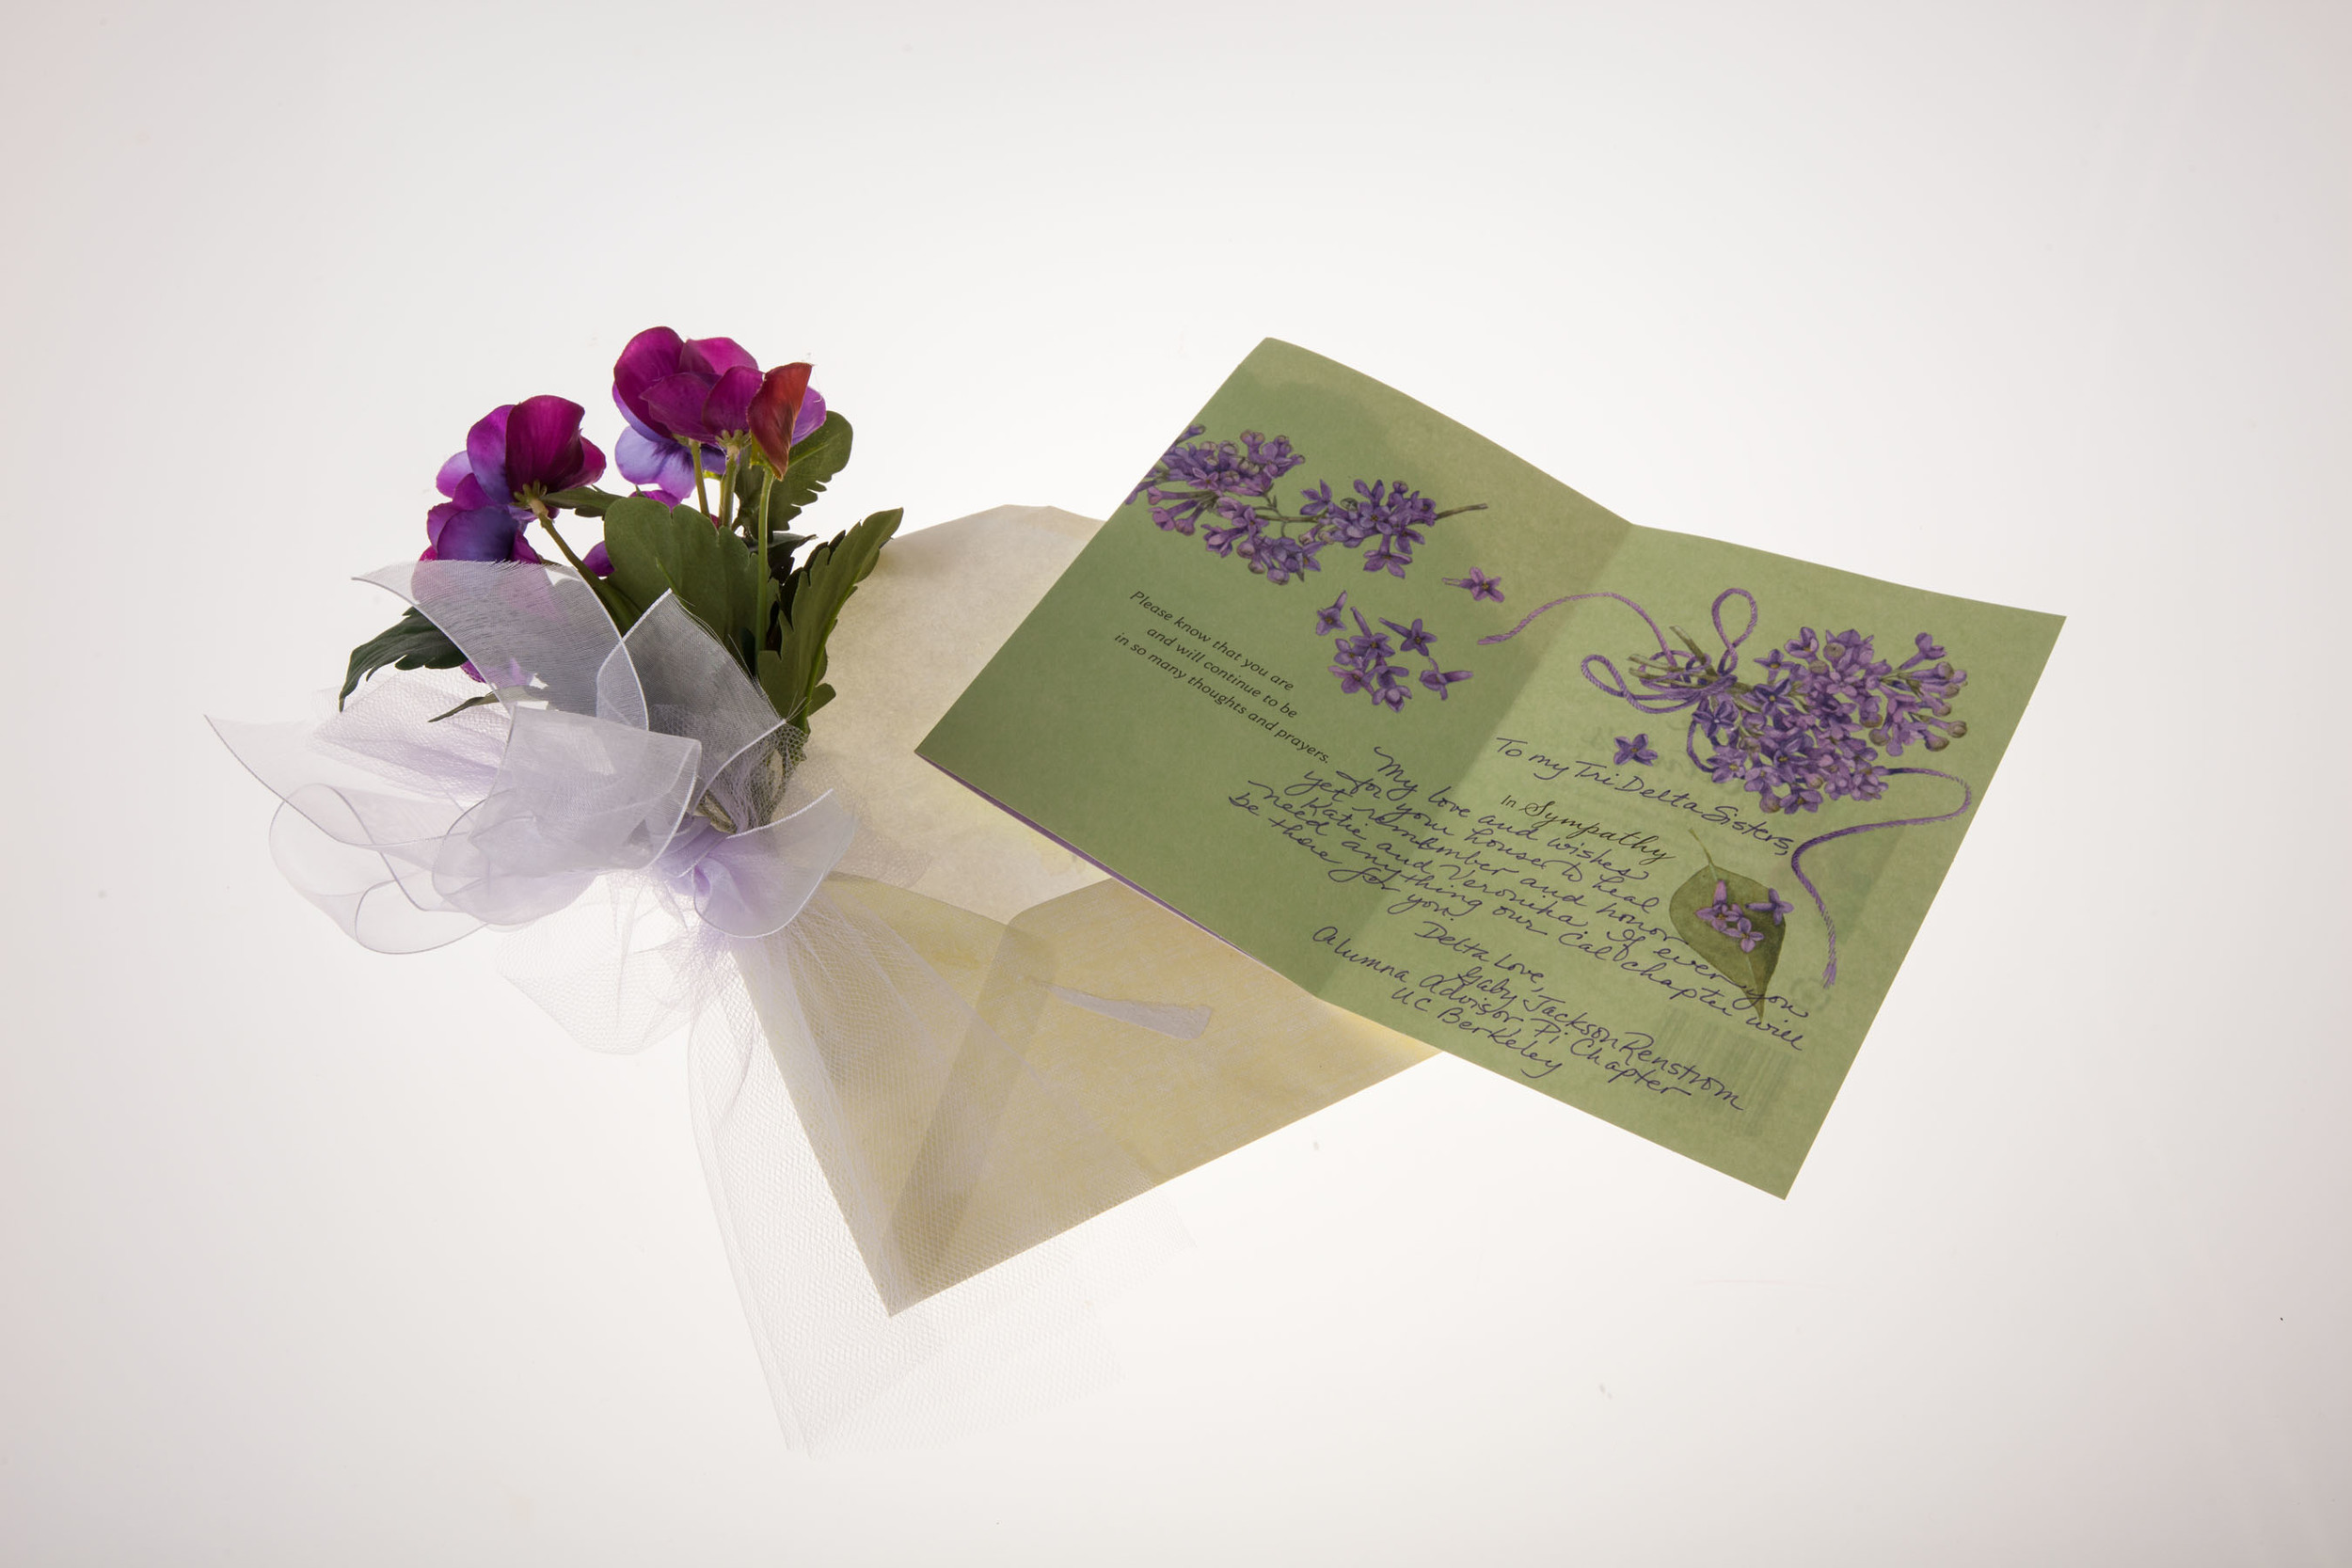 Card and flowers received by Tri Delta Sorority (on loan). Photographed by Claire Bredenoord.